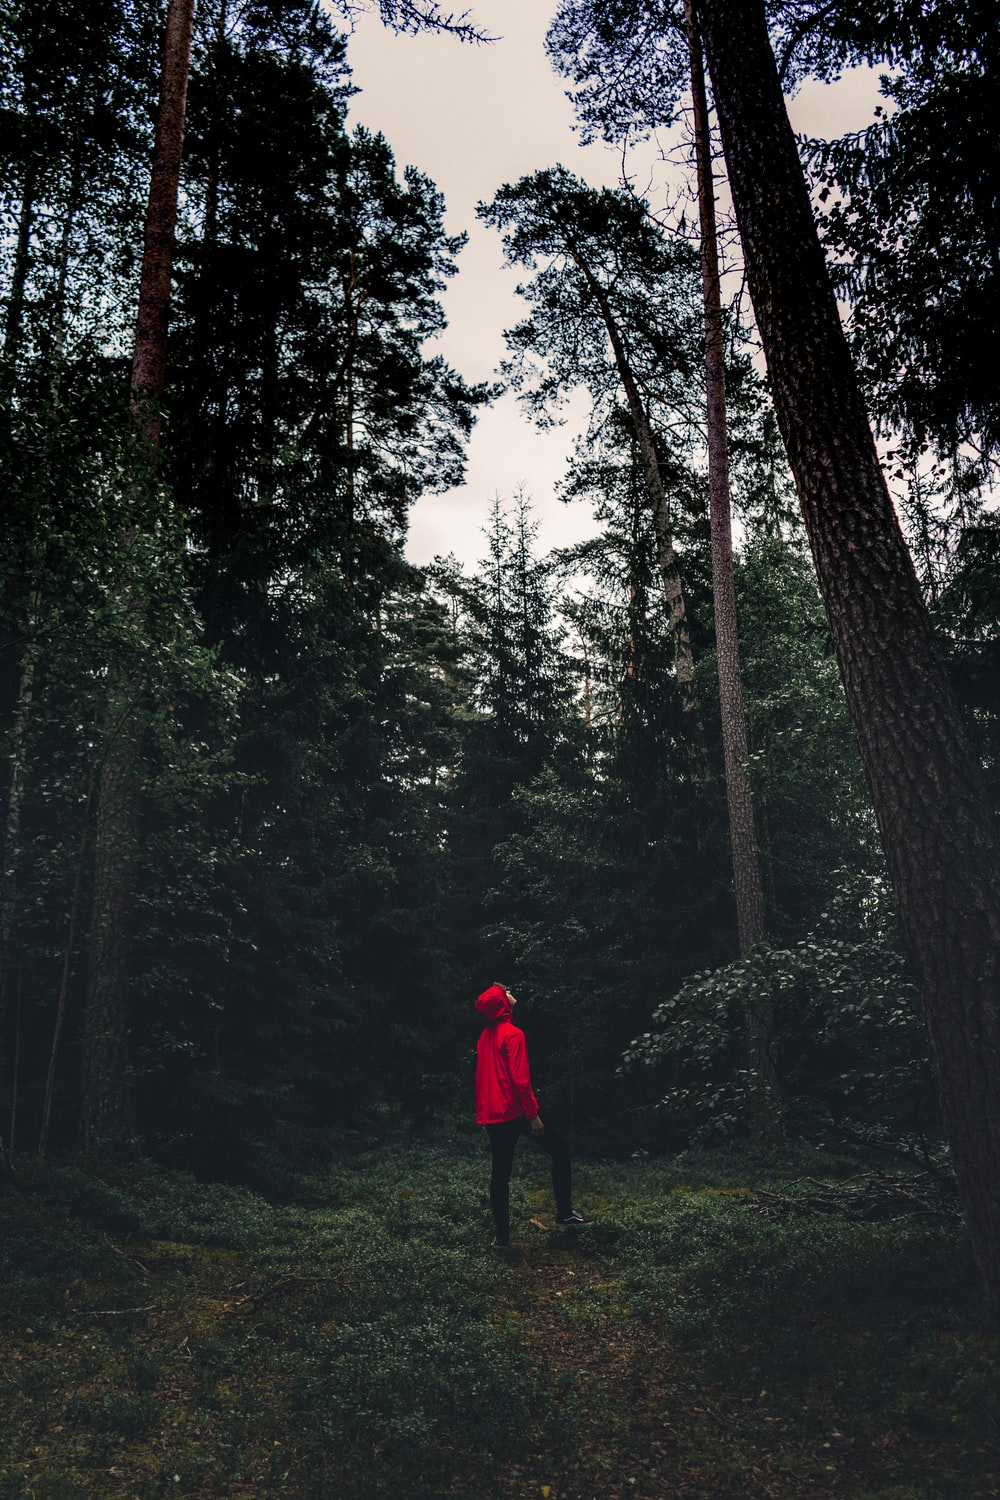 man in red hoodie standing on tree area while looking up